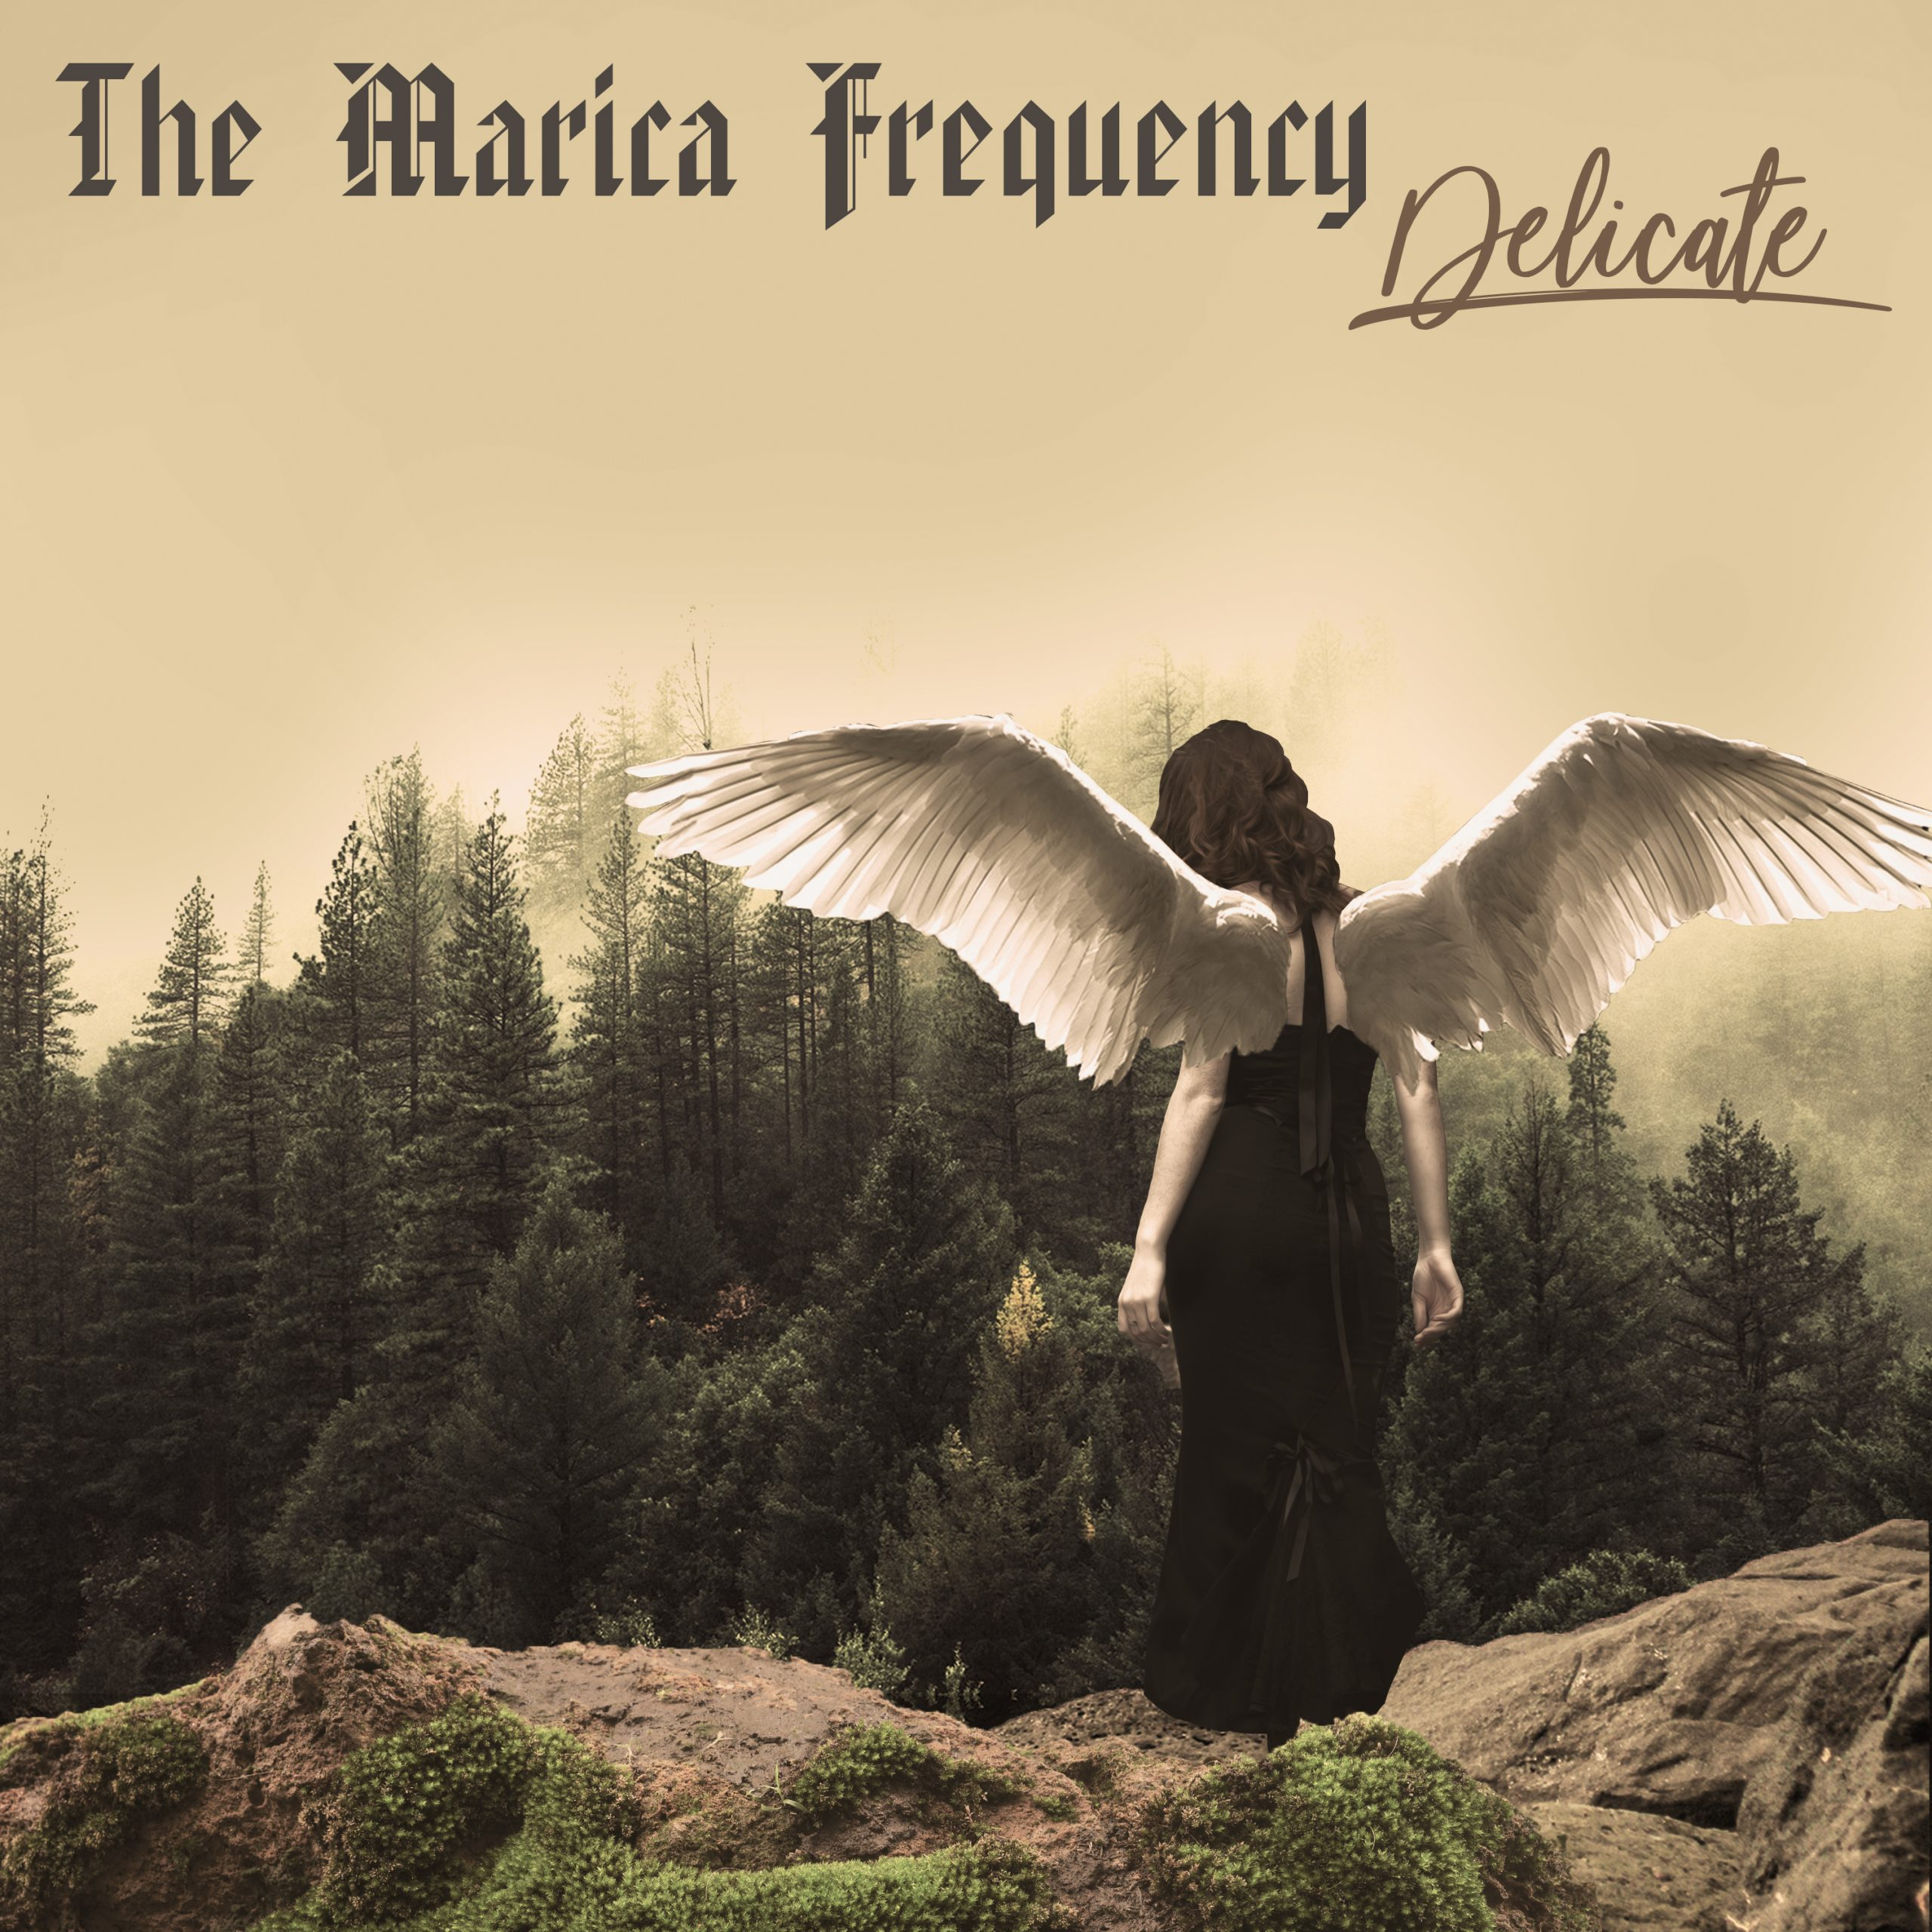 The Marica Frequency